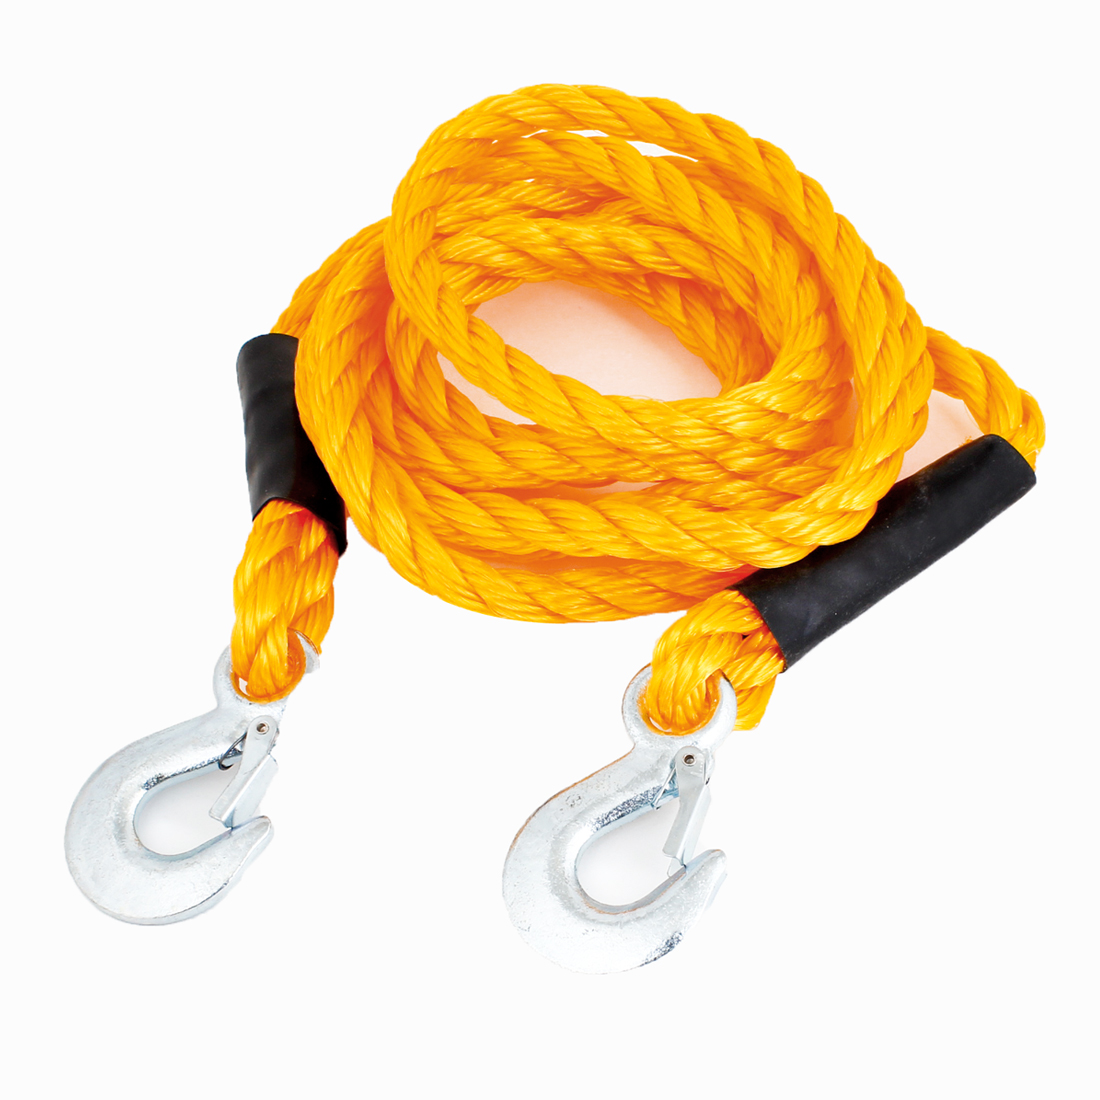 Truck Auto 1.5 Tons Capacity Emergency Twisted Tow Strap Orange 3.5M